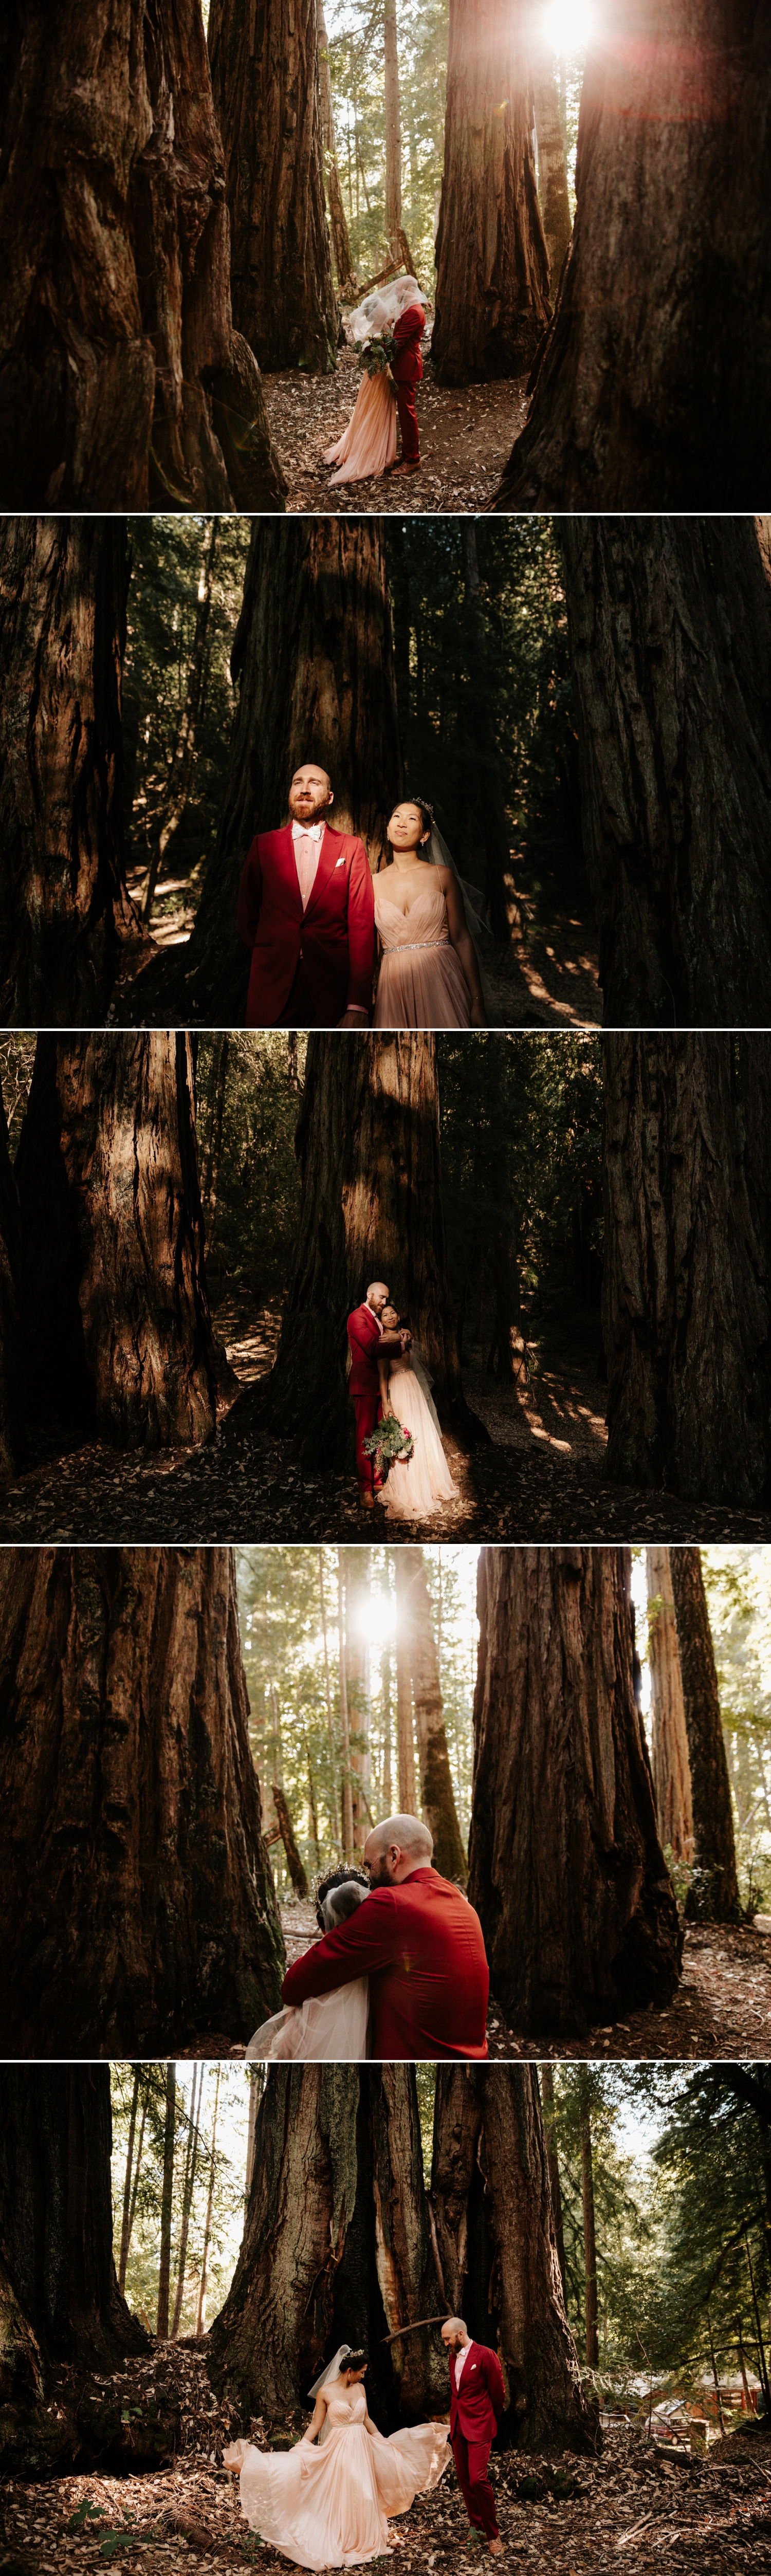 Redwood wedding in Northern California by Paige Nelson Photography